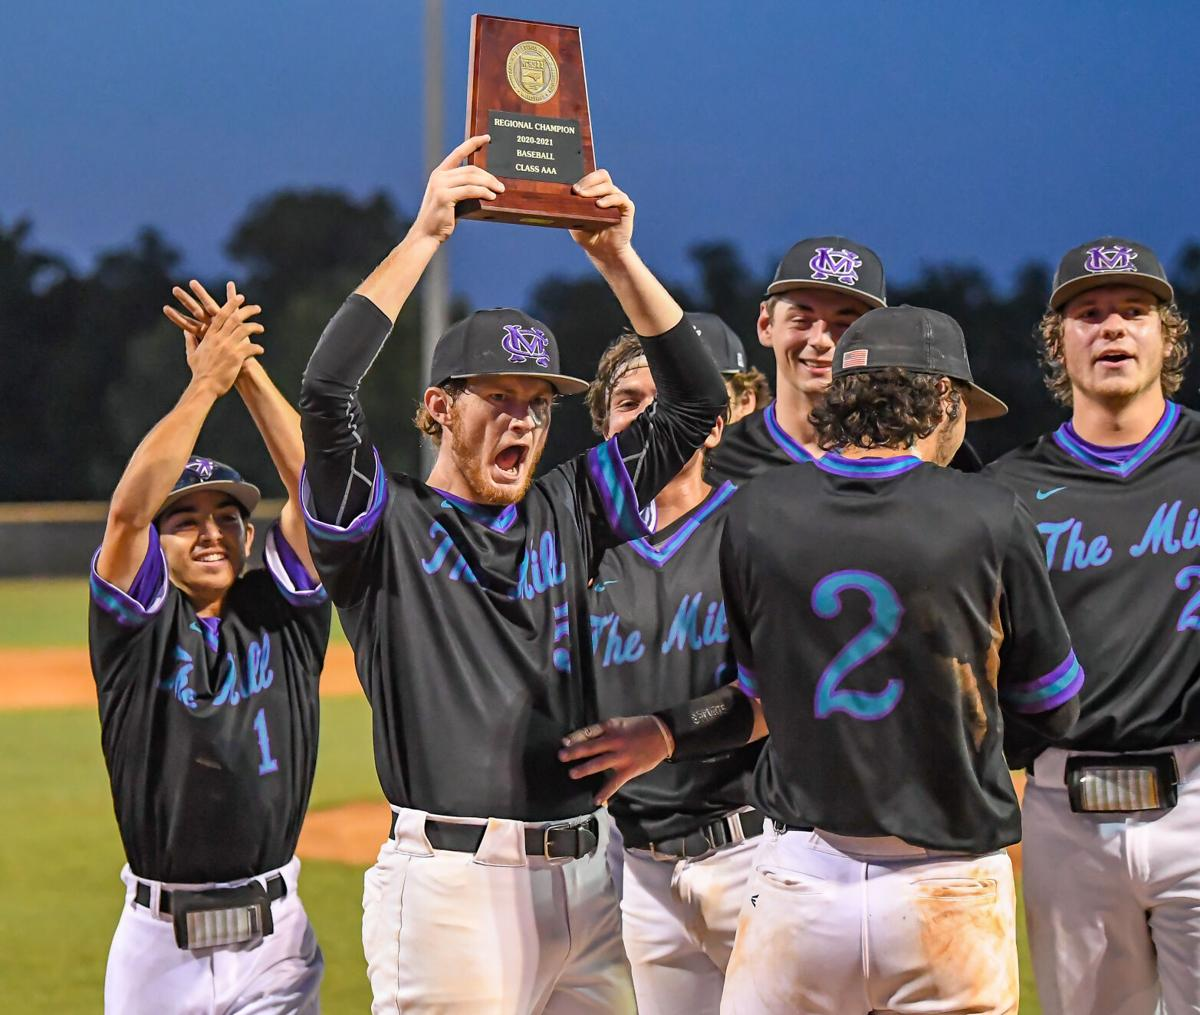 Cox Mill defeated Sun Valley 6-4 to become the Southeast regional champions. The Chargers advance to the State 3a Championship game.